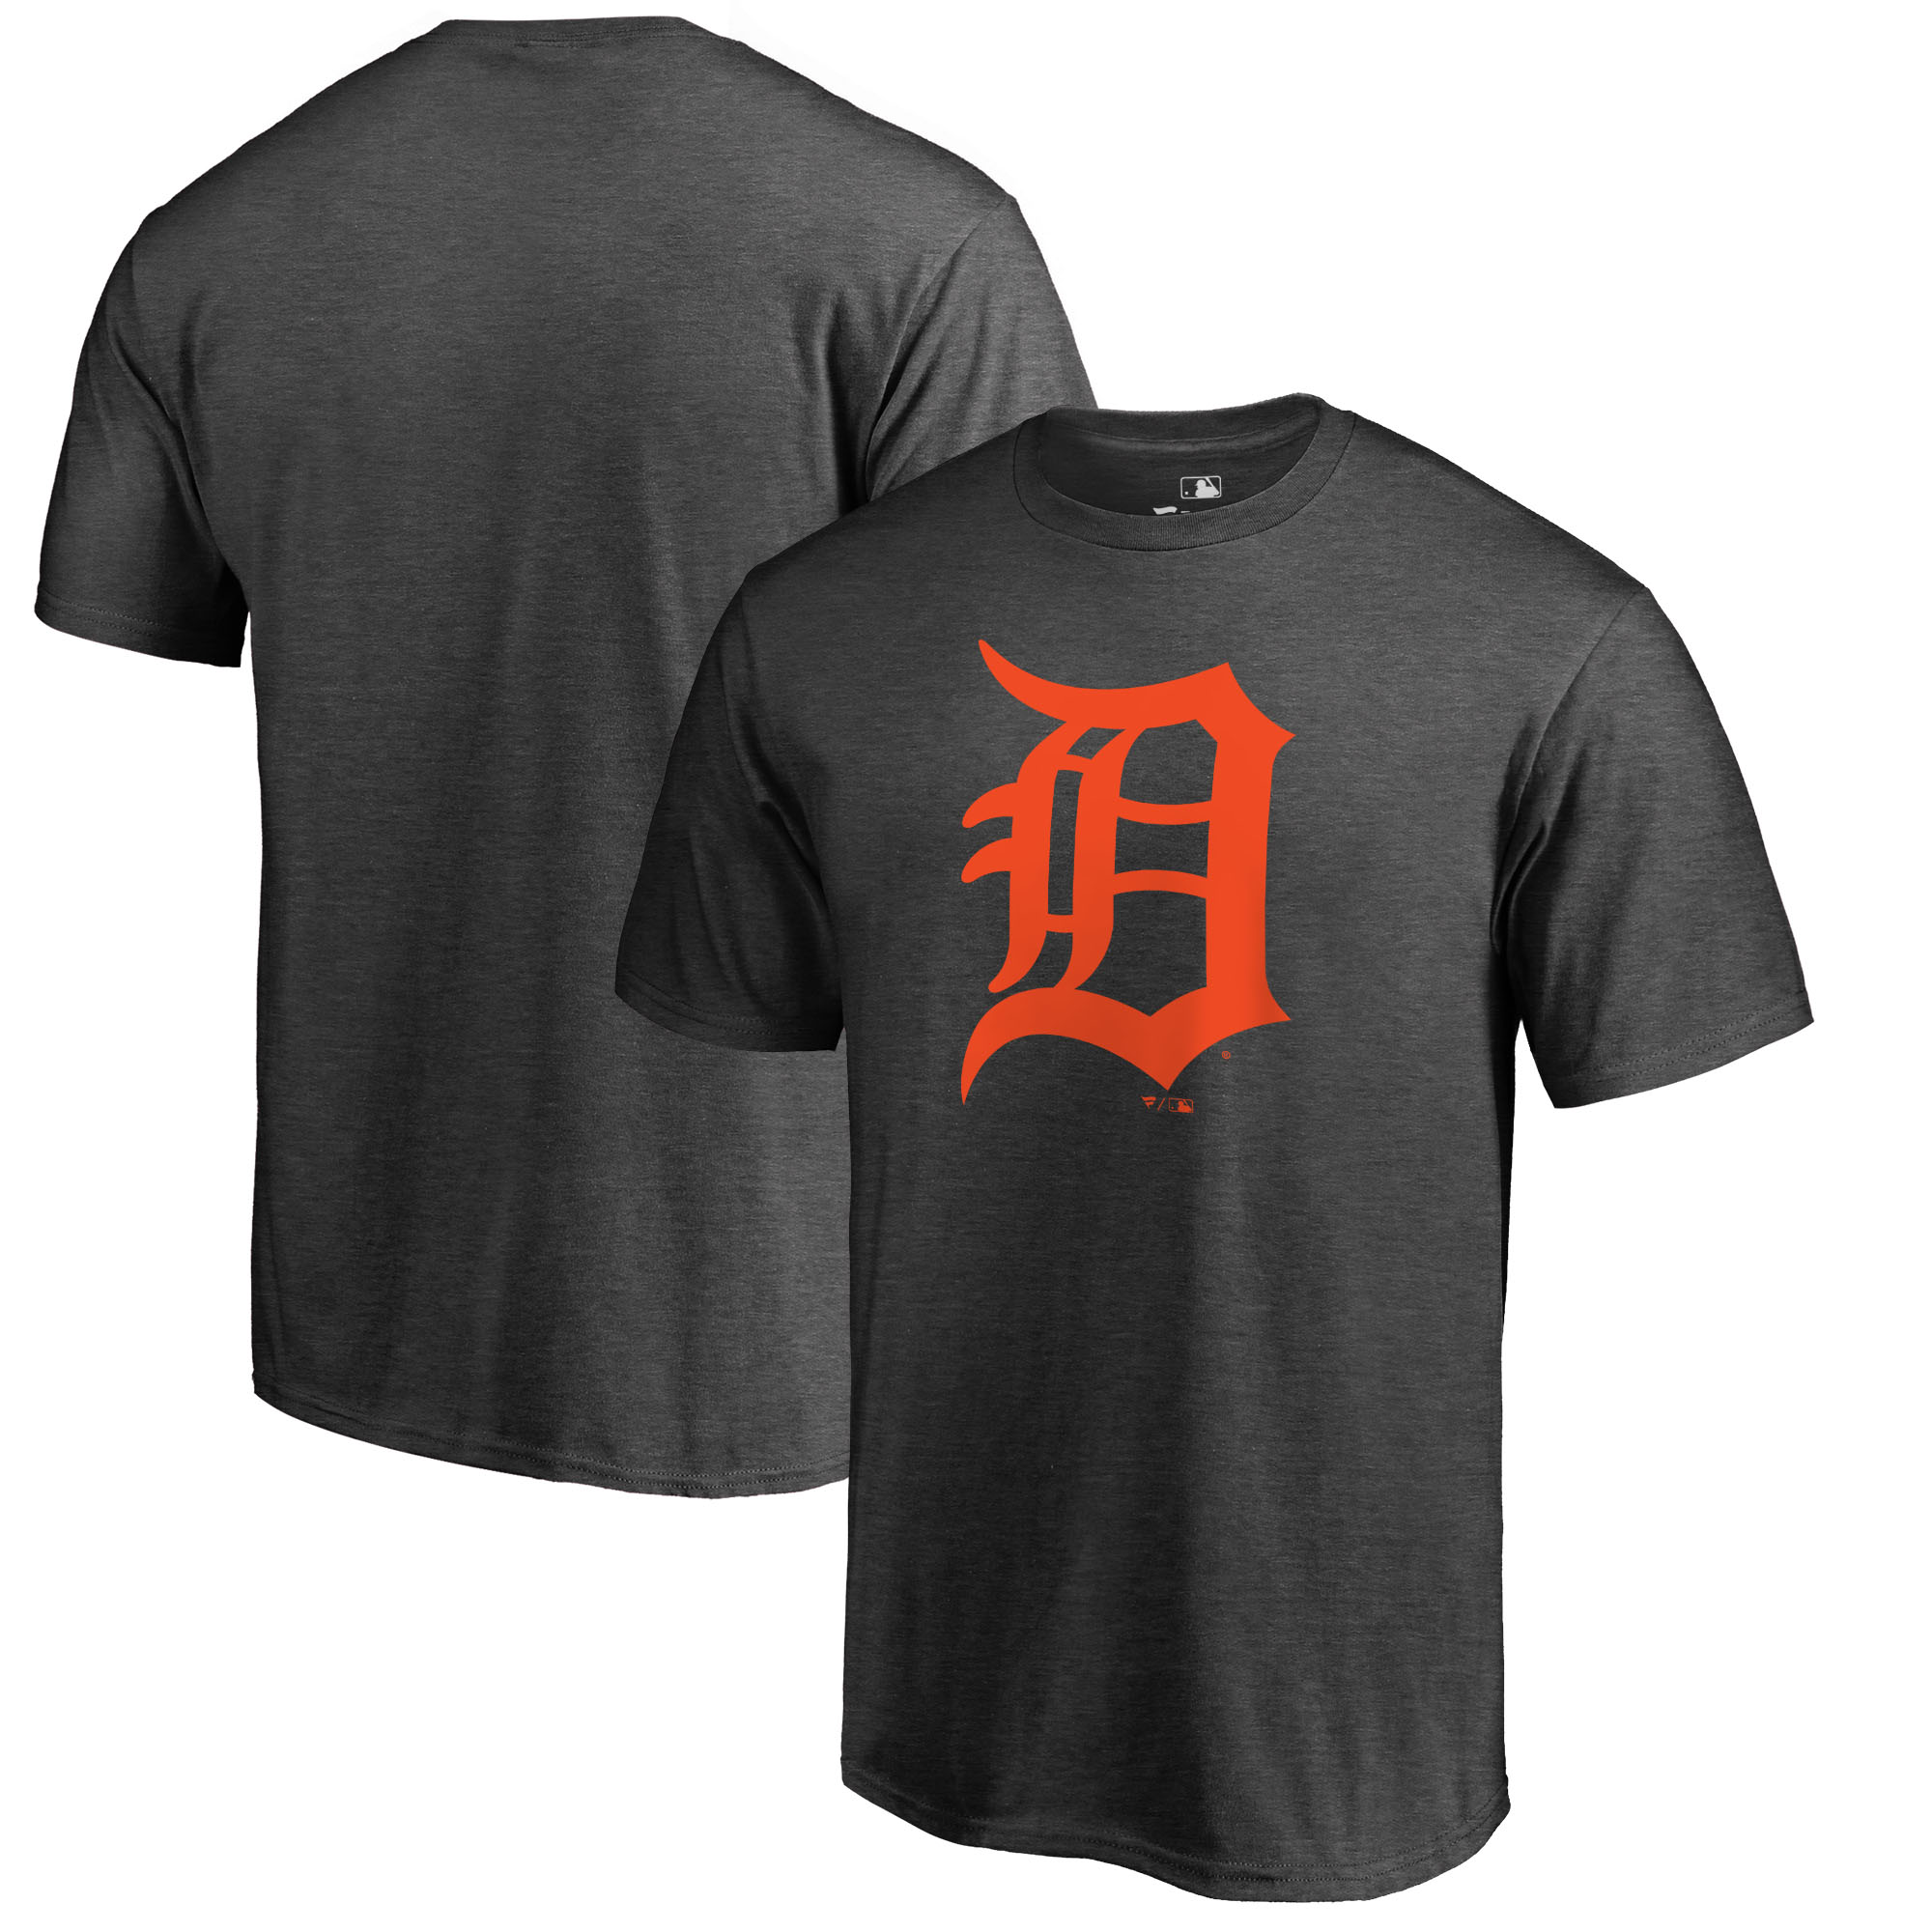 Detroit Tigers Fanatics Branded Primary Logo T-Shirt - Heathered Charcoal